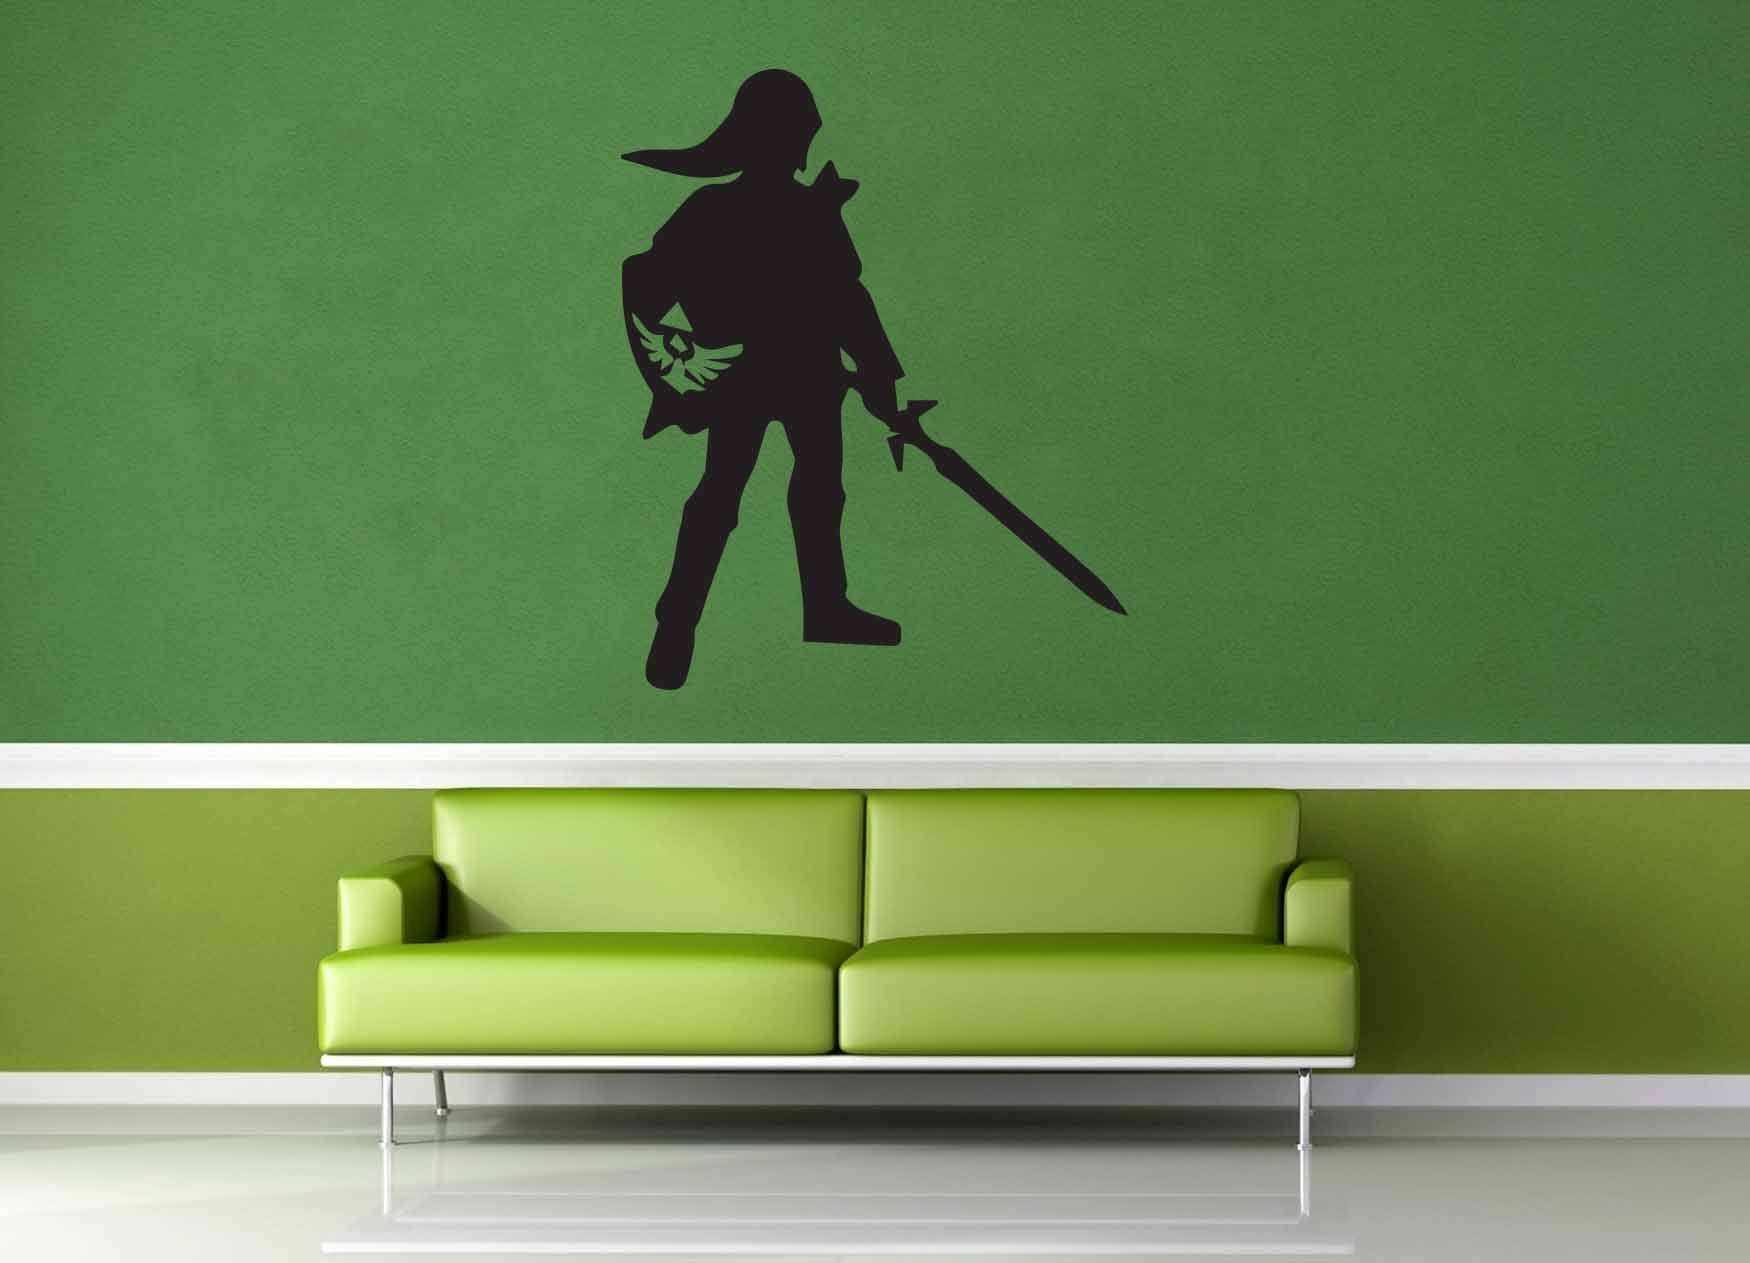 Link silhouette legend of zelda wall decal zelda link silhouette legend of zelda wall decal amipublicfo Choice Image